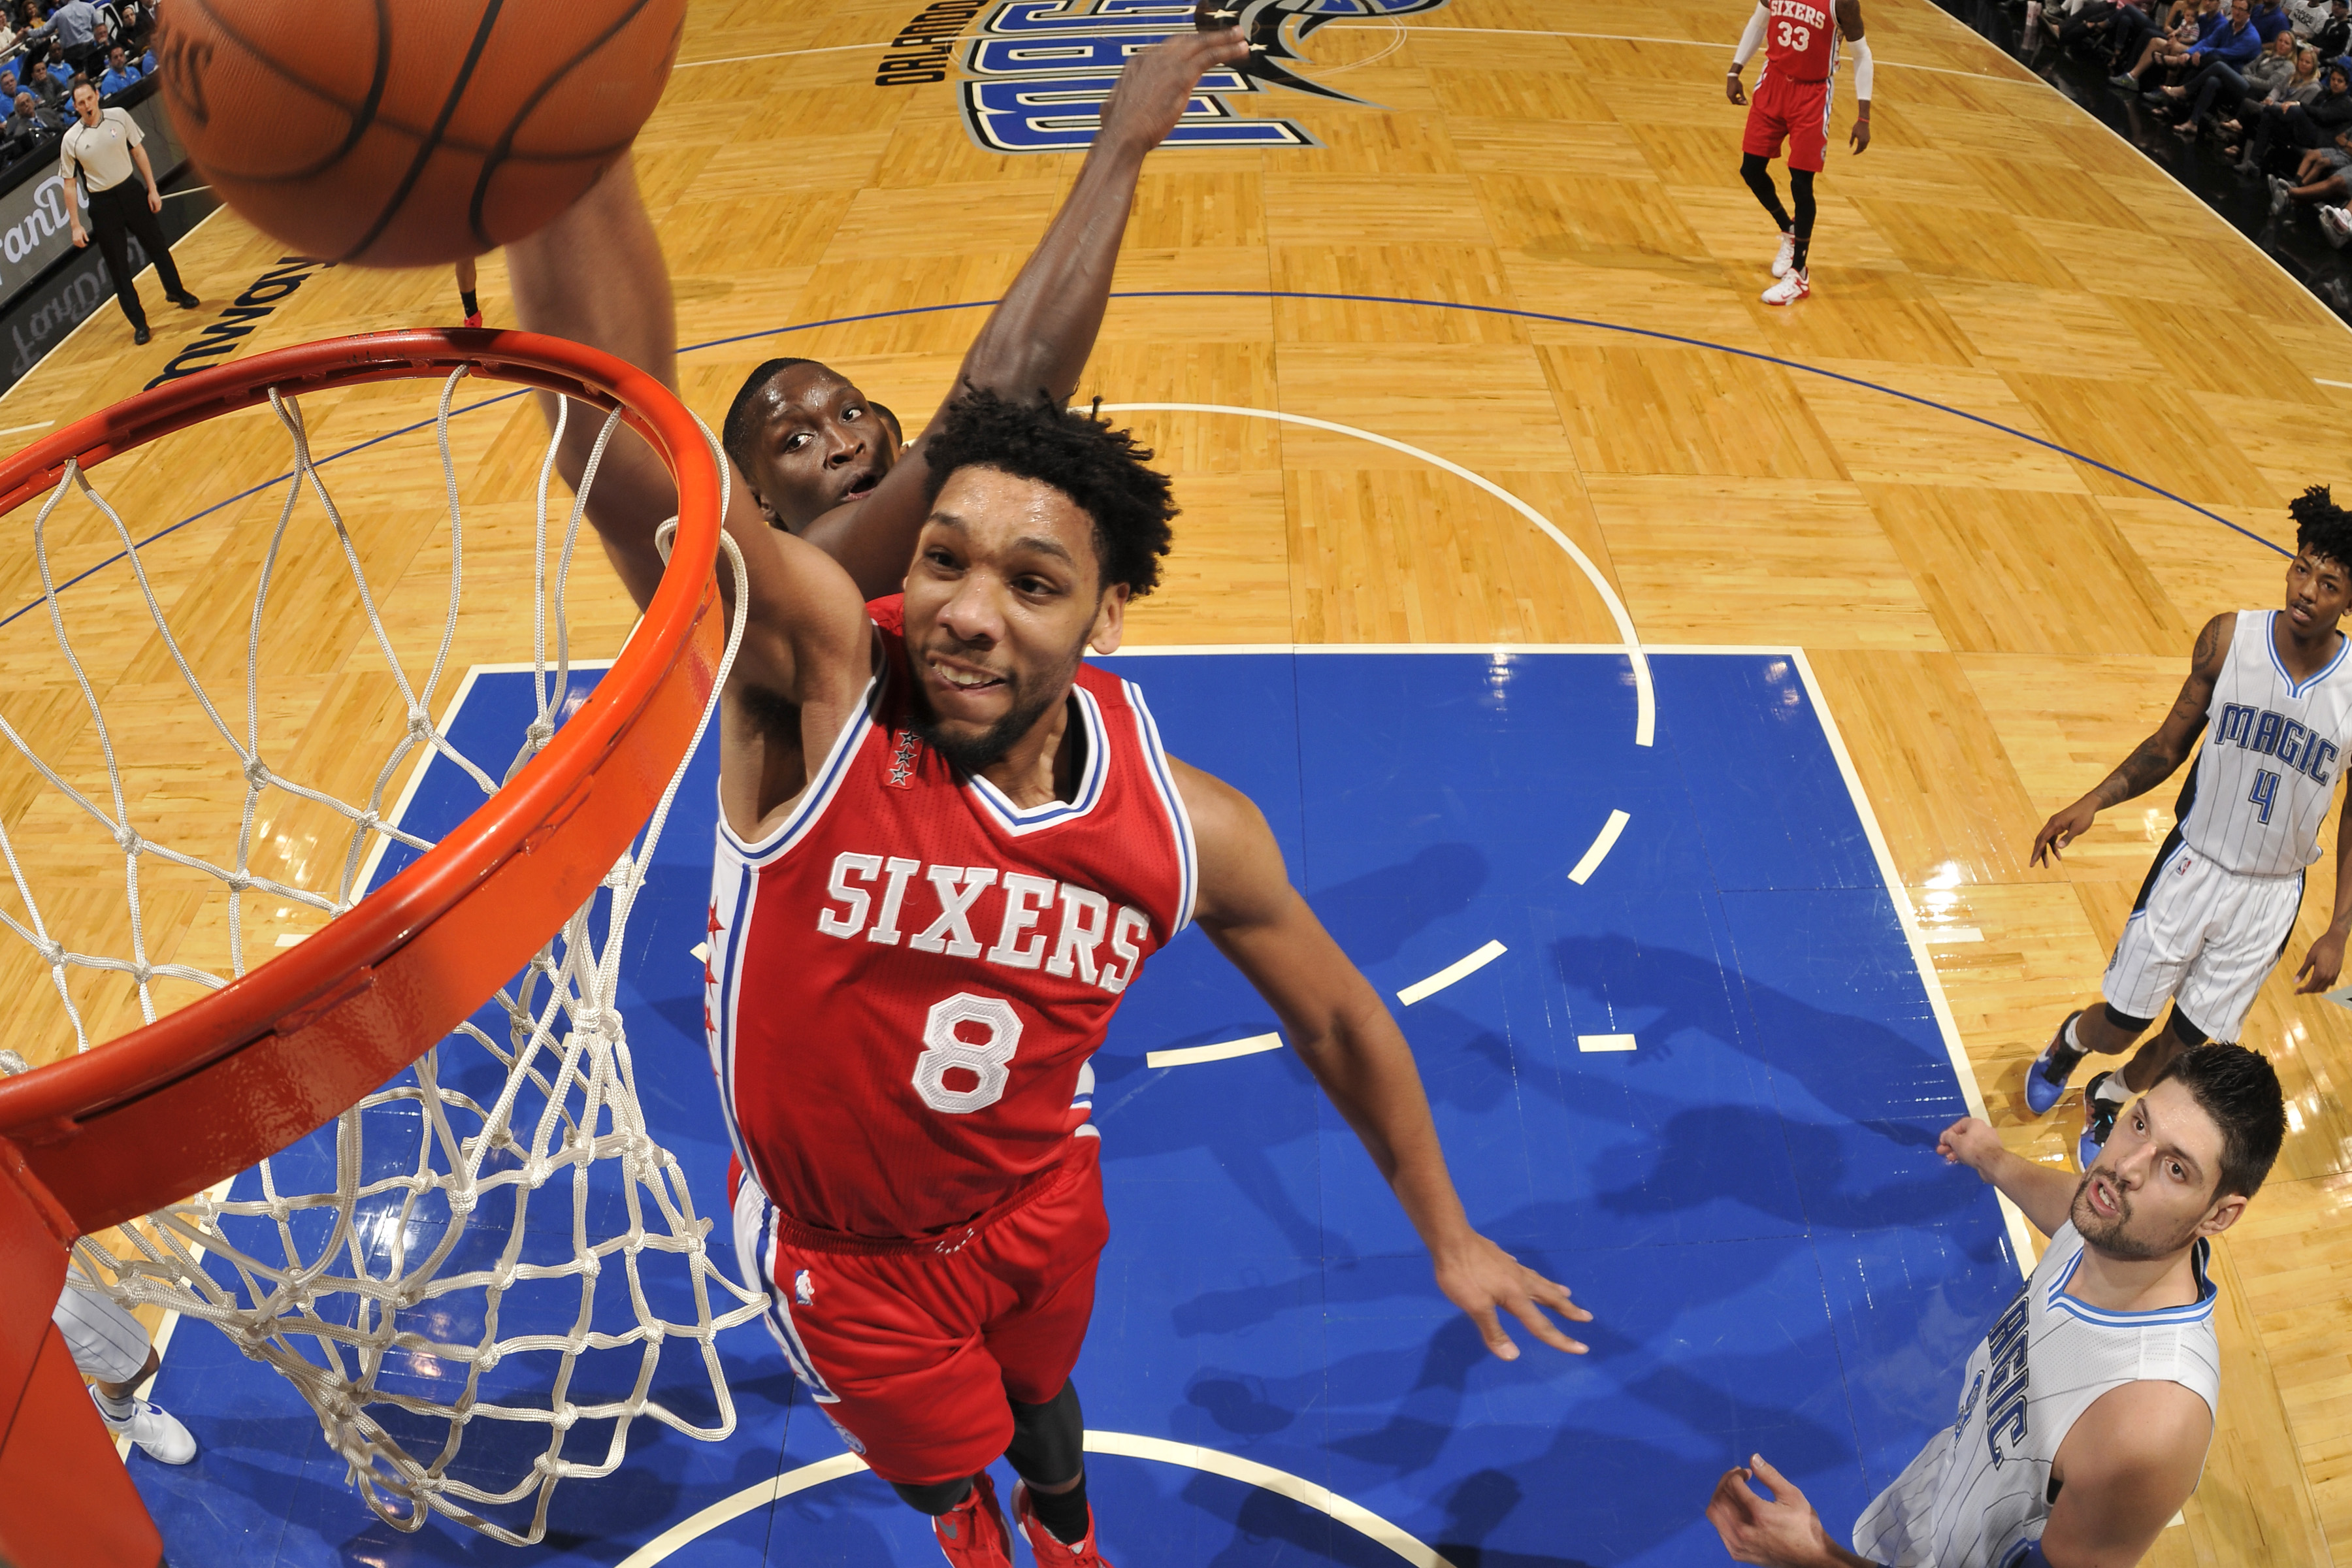 ORLANDO, FL - FEBRUARY 28:  Jahlil Okafor #8 of the Philadelphia 76ers shoots the ball against the Orlando Magic on February 28, 2016 at the Amway Center in Orlando, Florida. (Photo by Fernando Medina/NBAE via Getty Images)